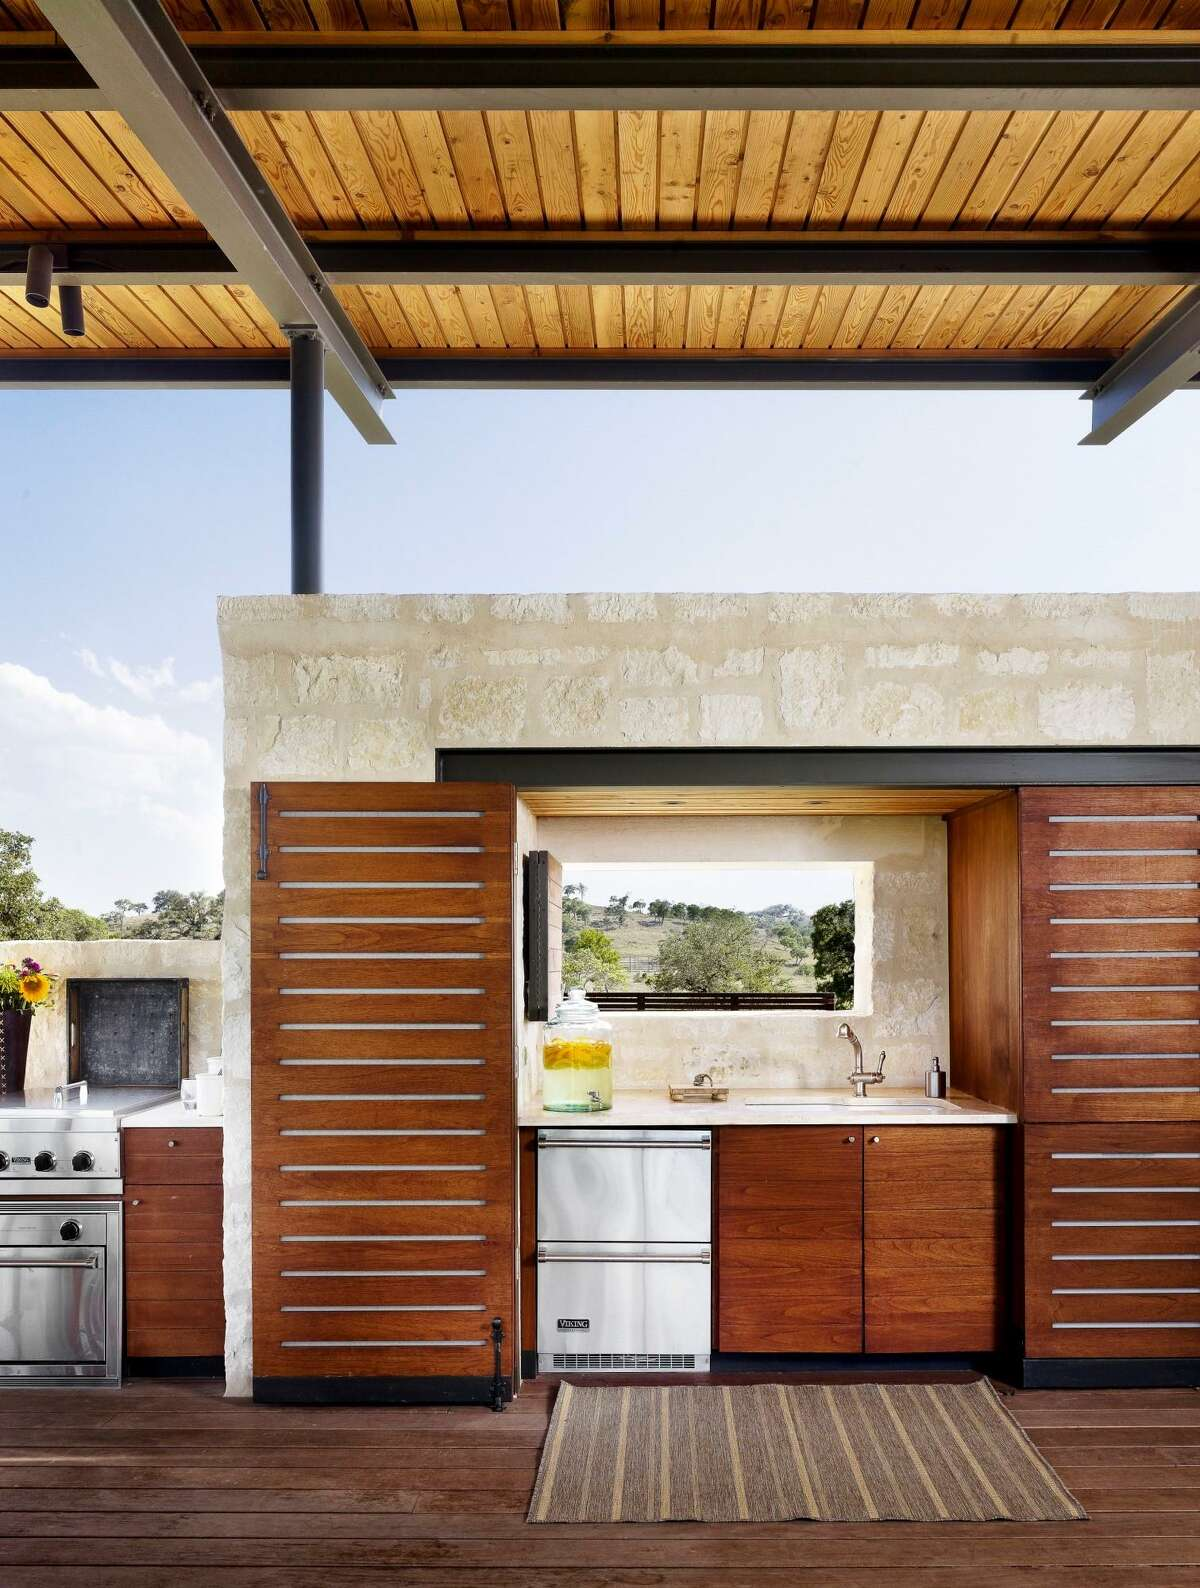 Another look at the pool pavilion shows how doors open to reveal the sink area for easy clean up.